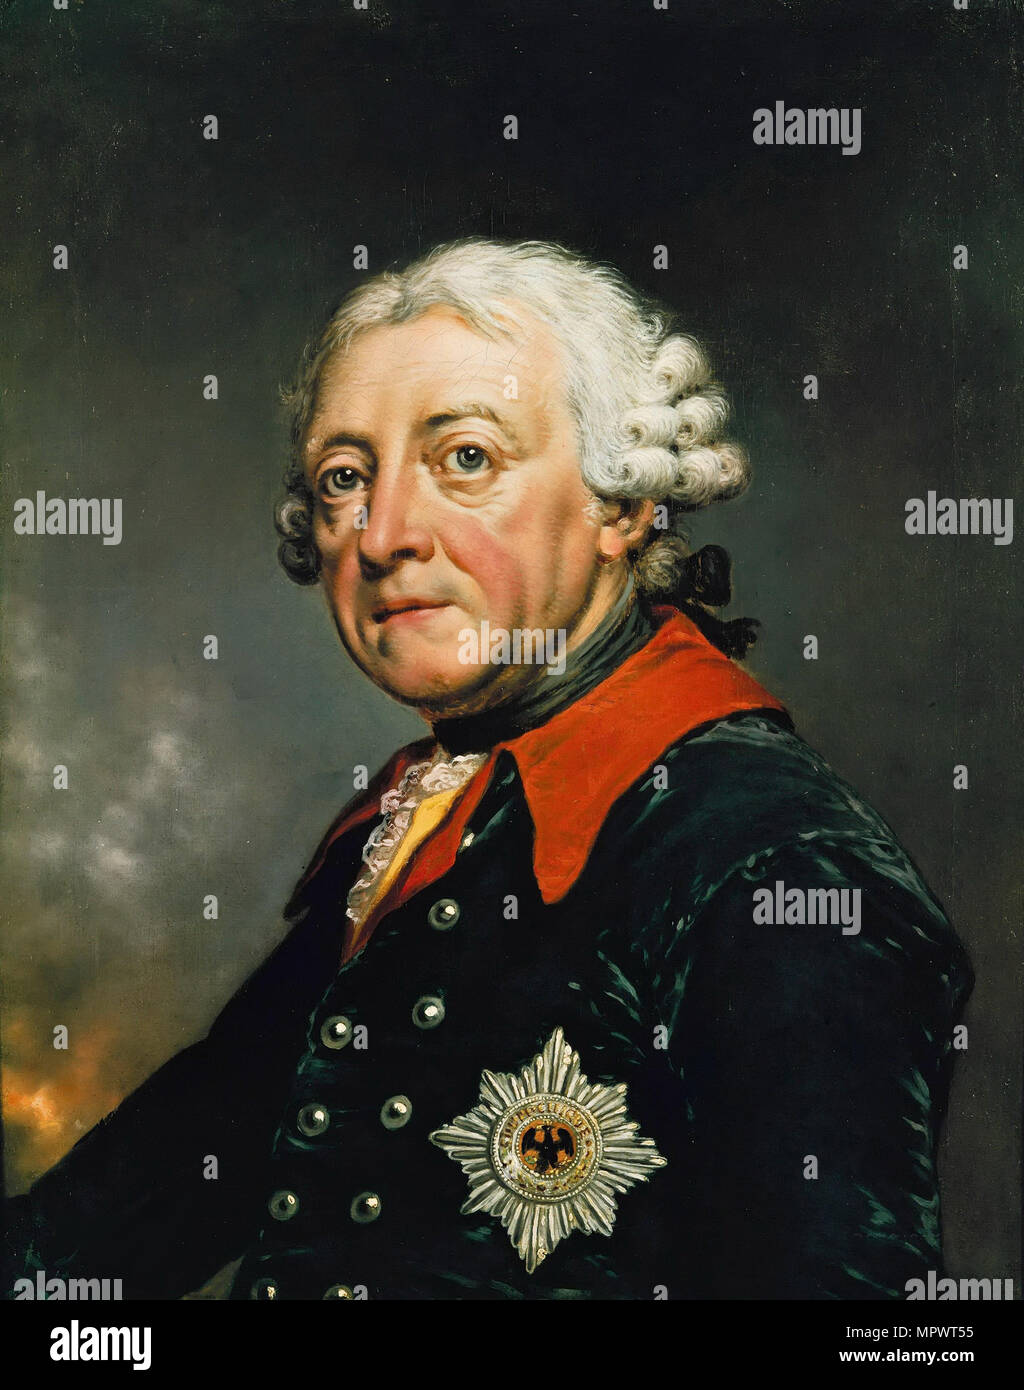 Portrait of Frederick II of Prussia (1712-1786), 1782. - Stock Image